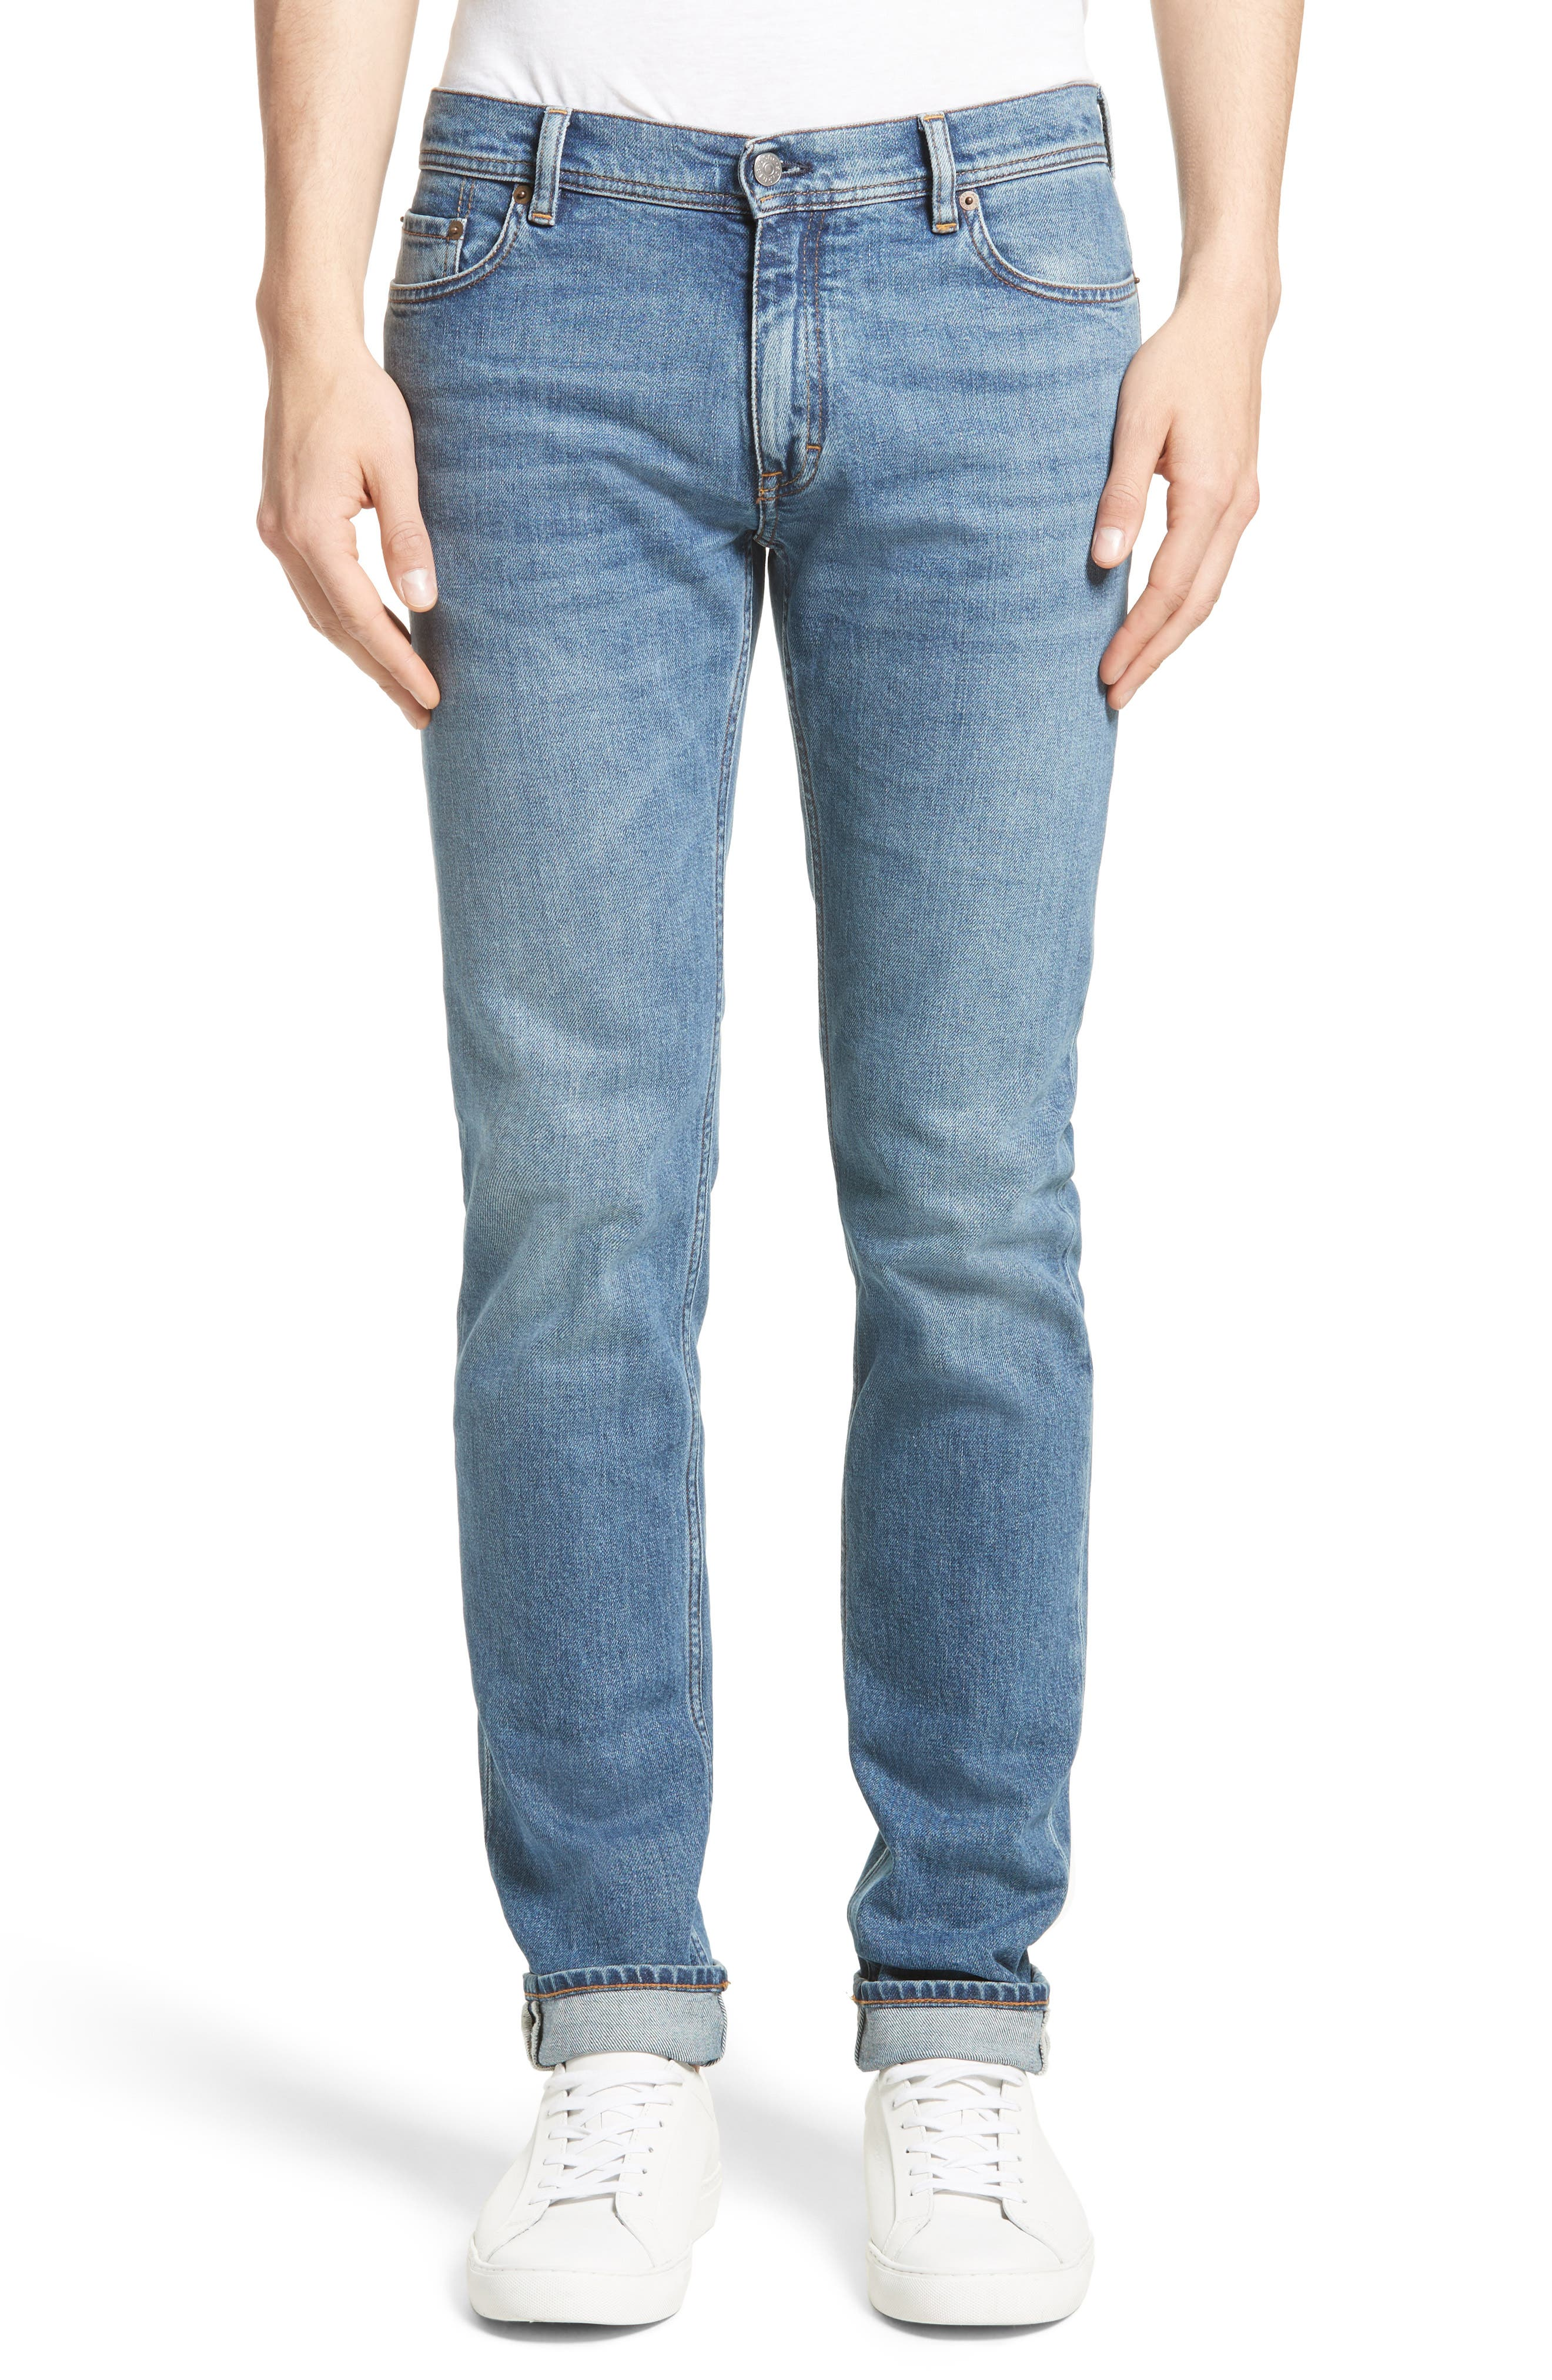 North Skinny Jeans,                         Main,                         color, 420